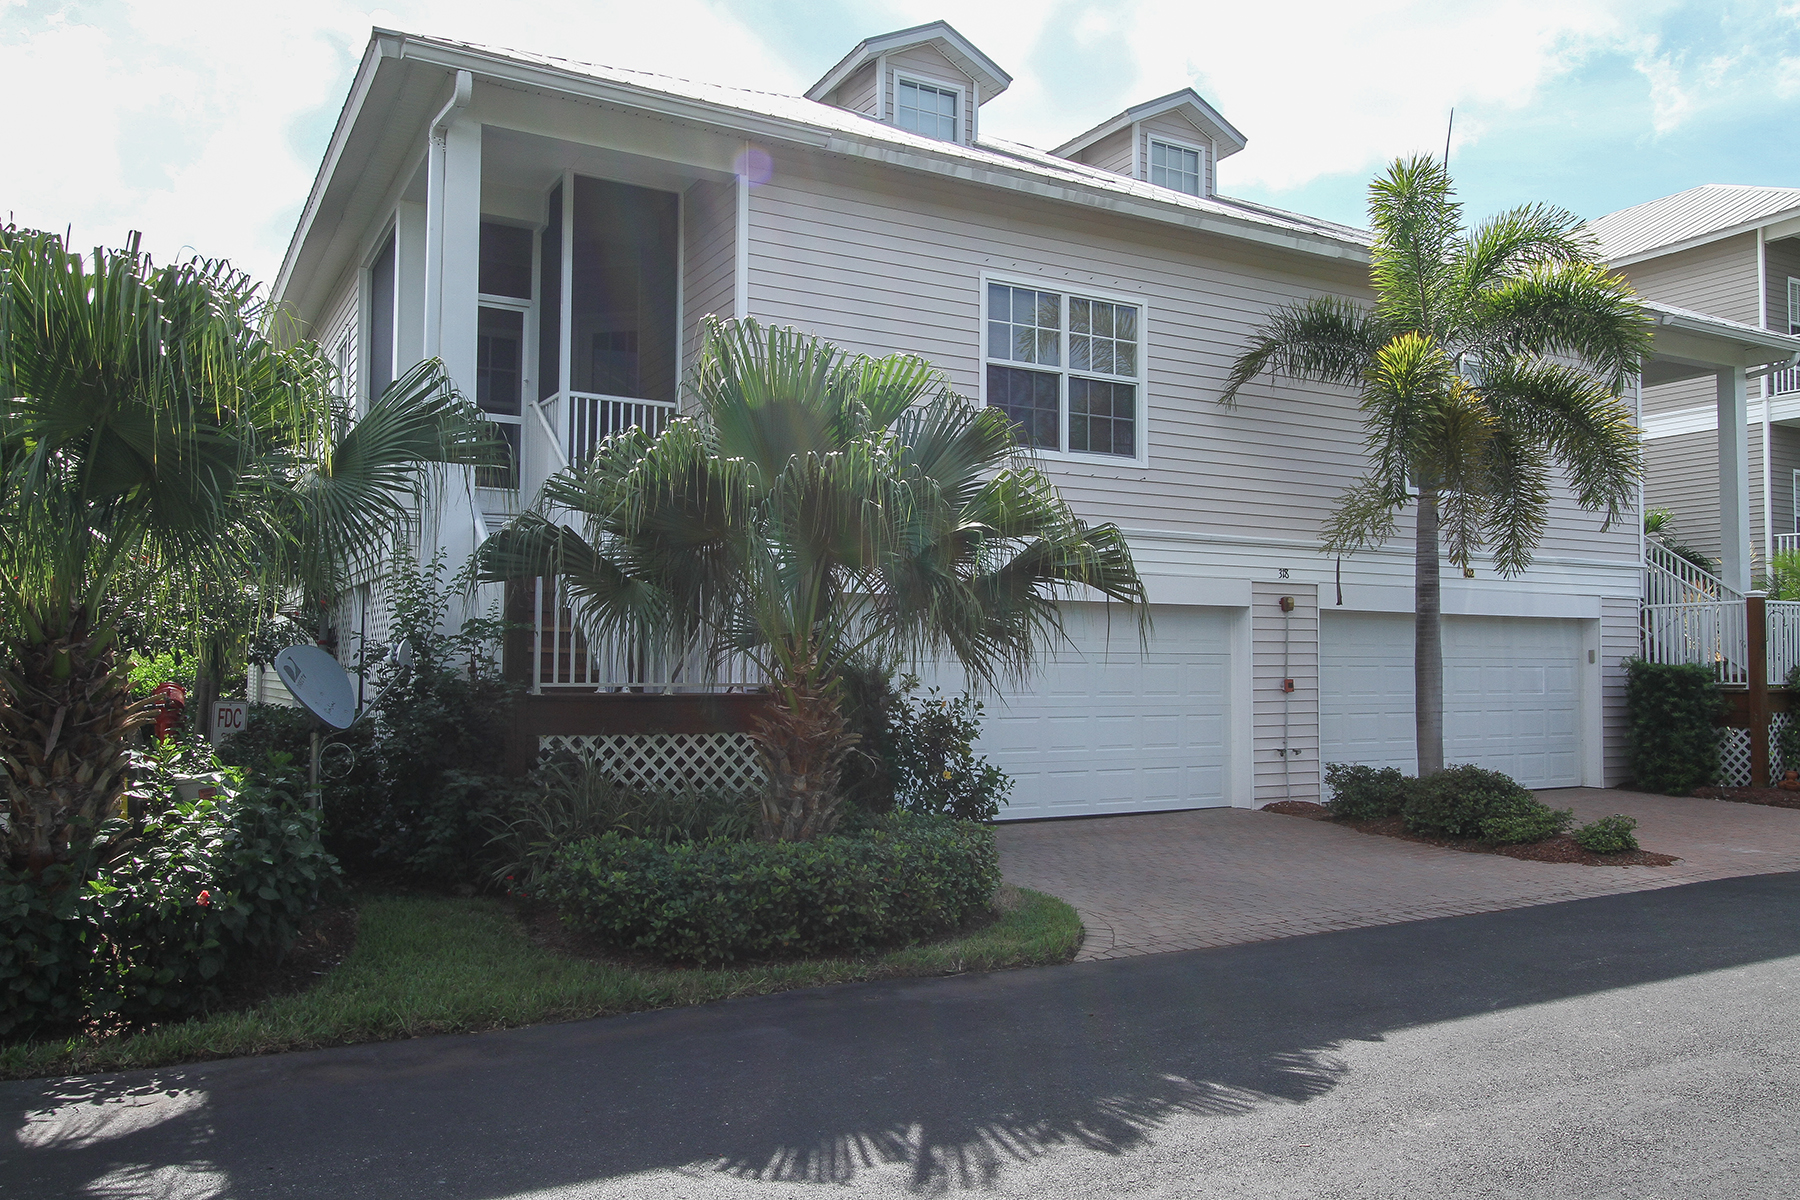 Condominium for Rent at GOODLAND-CALUSA ISLAND VILLAGE 318 Angler Dr 401 Goodland, Florida 34140 United States